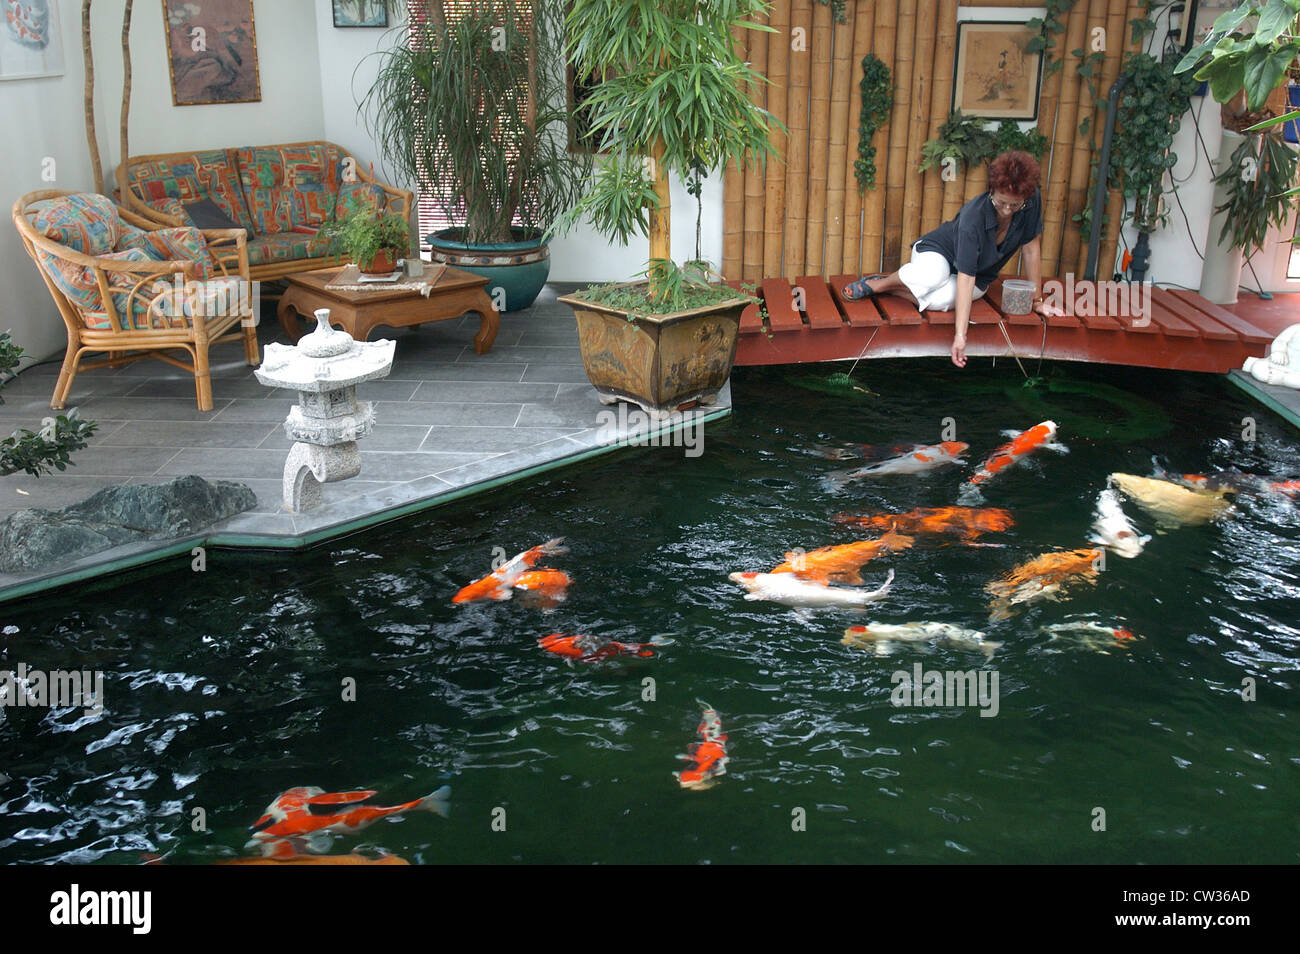 Indoor koi pond in reigoldswil switzerland stock photo for Koi carp pool design